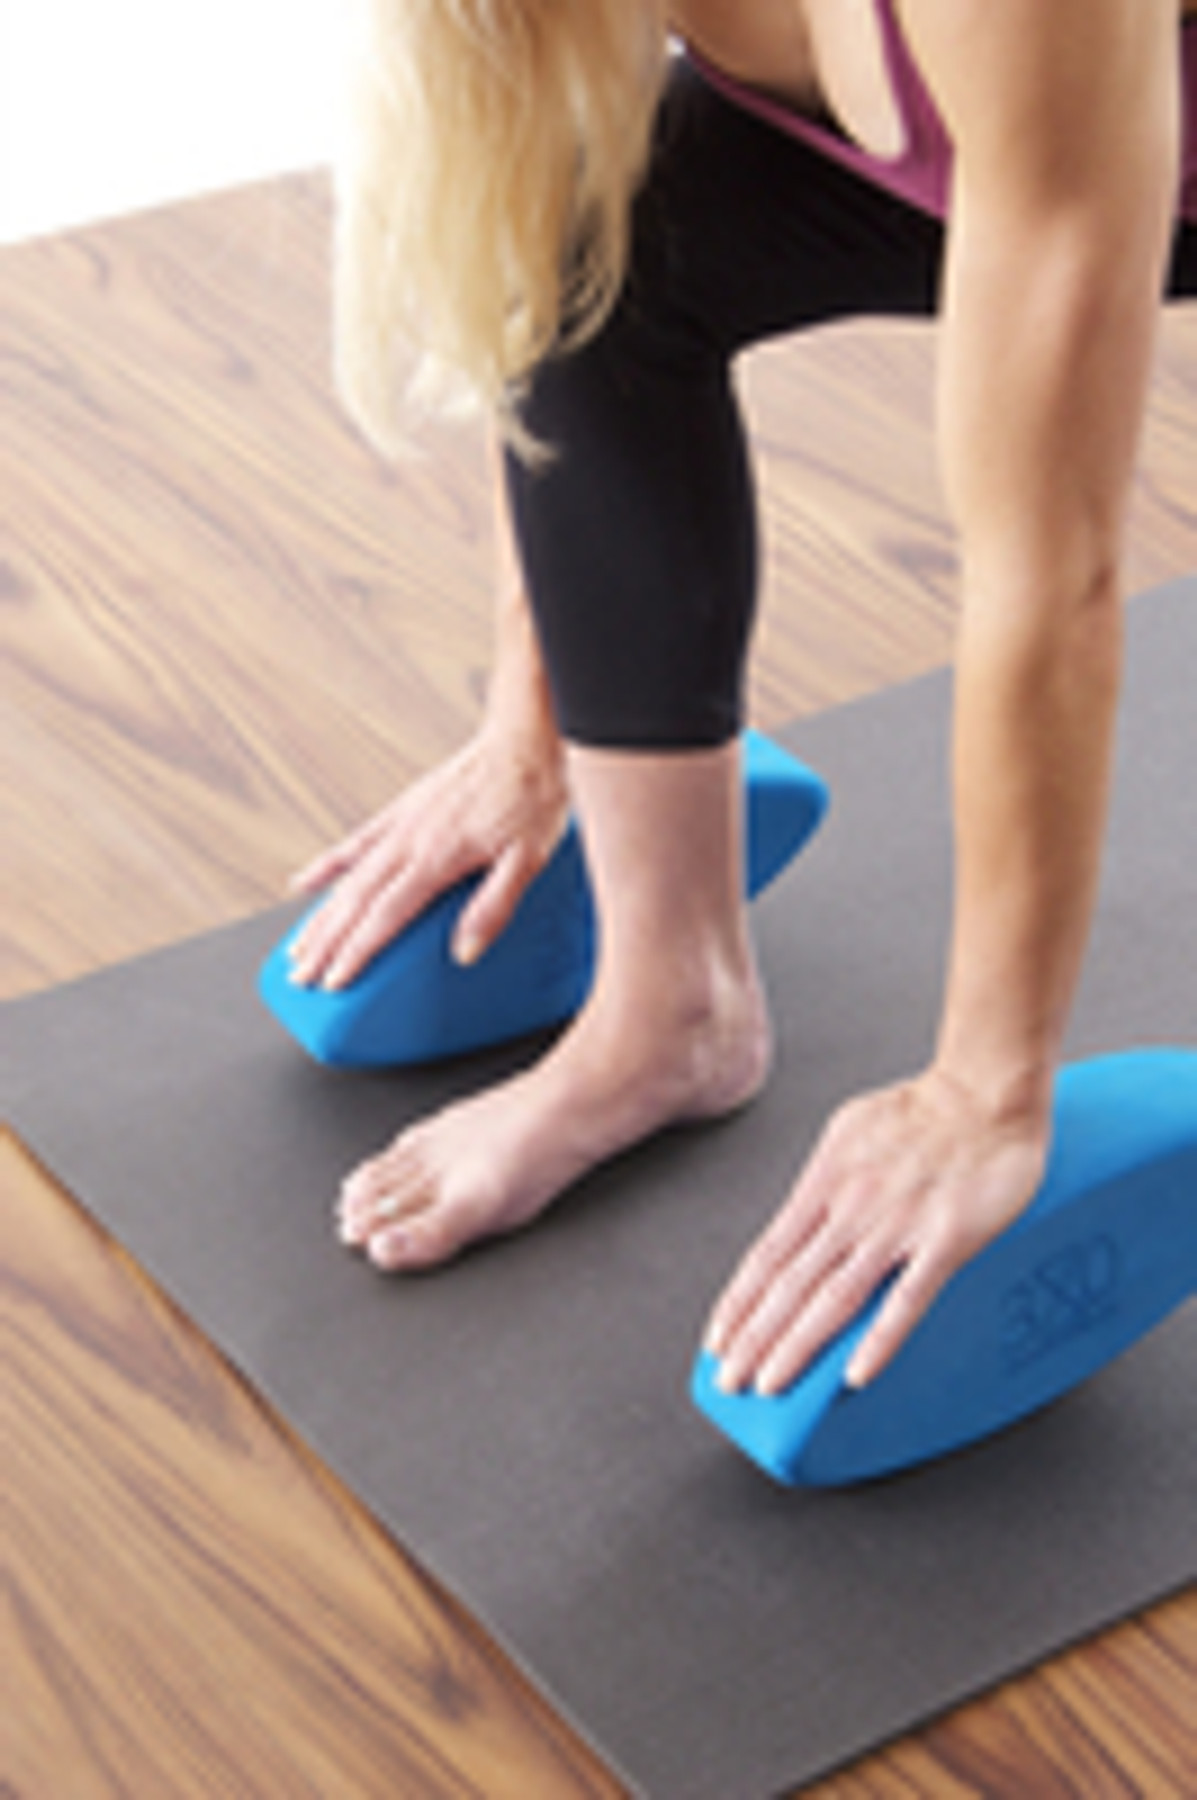 Using Ergonomic Yoga Blocks By Three Minute Egg To Protect Your Wrists Three Minute Egg